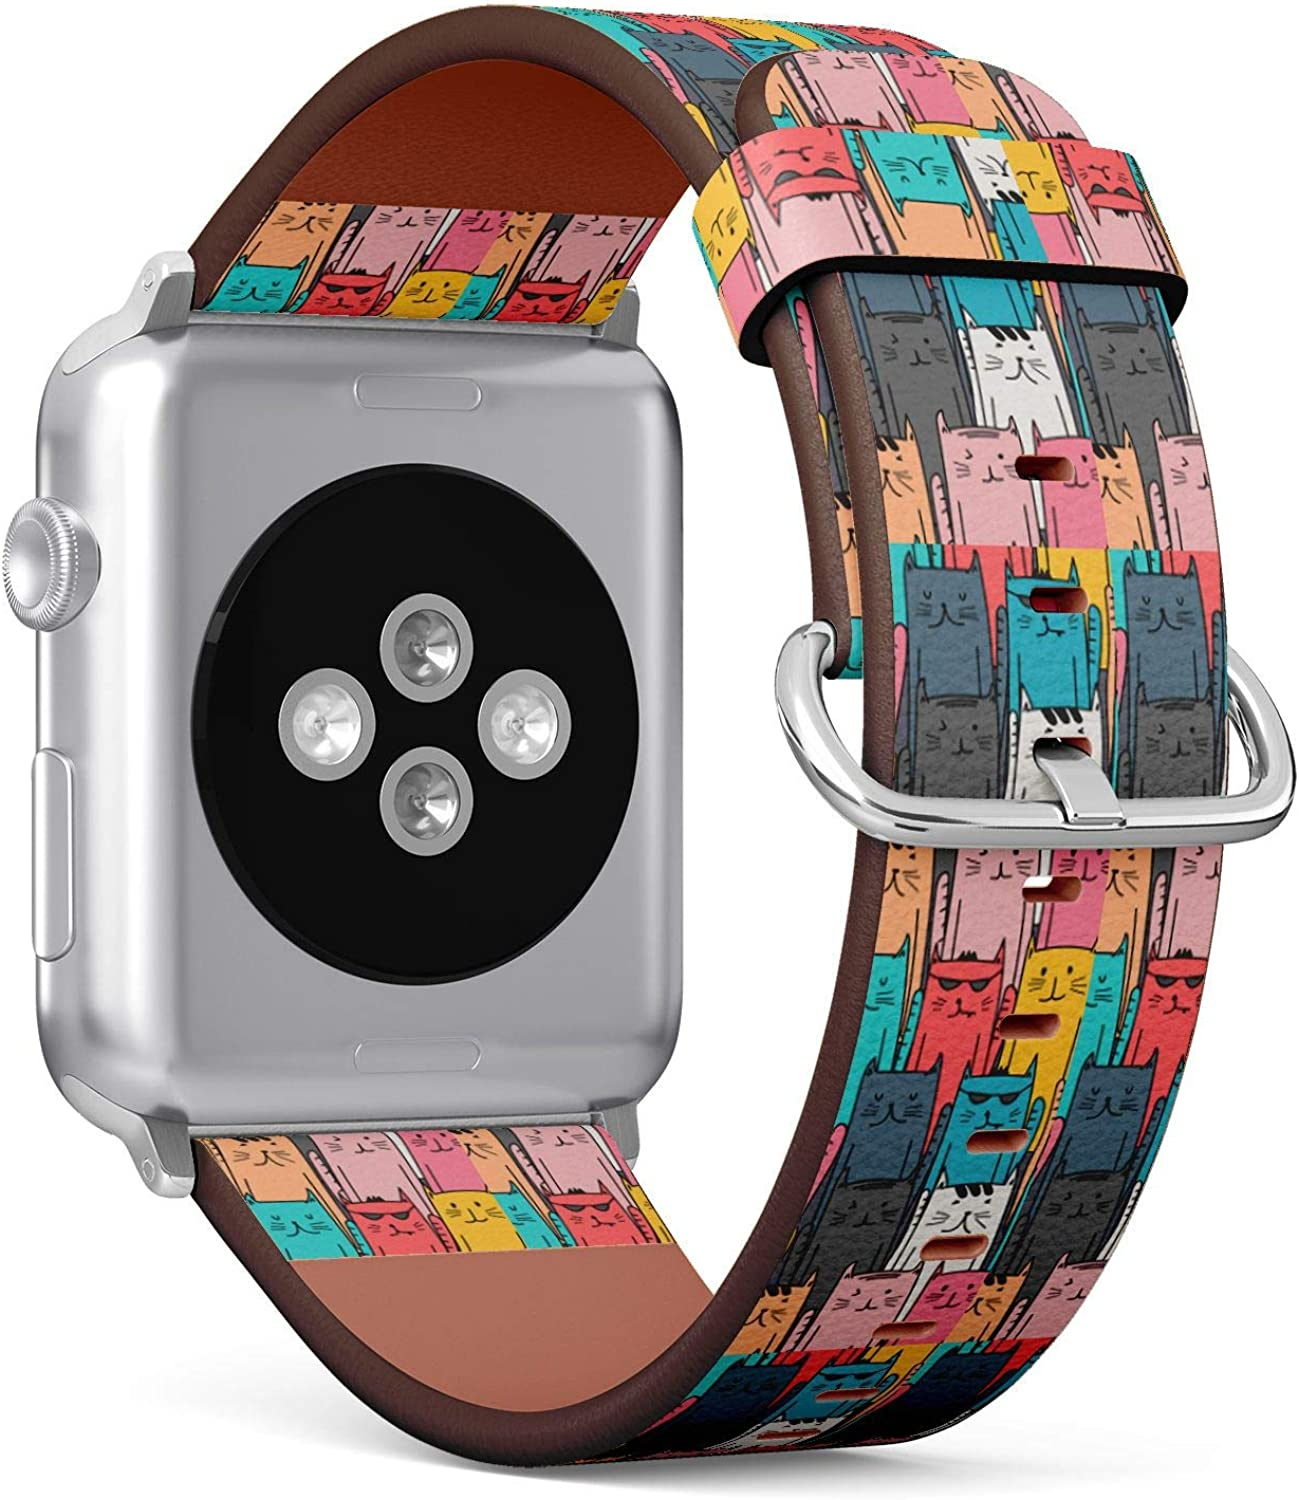 (Cute Hand Drawn Cats Doodle Art) Patterned Leather Wristband Strap for Apple Watch Series 4/3/2/1 gen,Replacement for iWatch 38mm / 40mm Bands